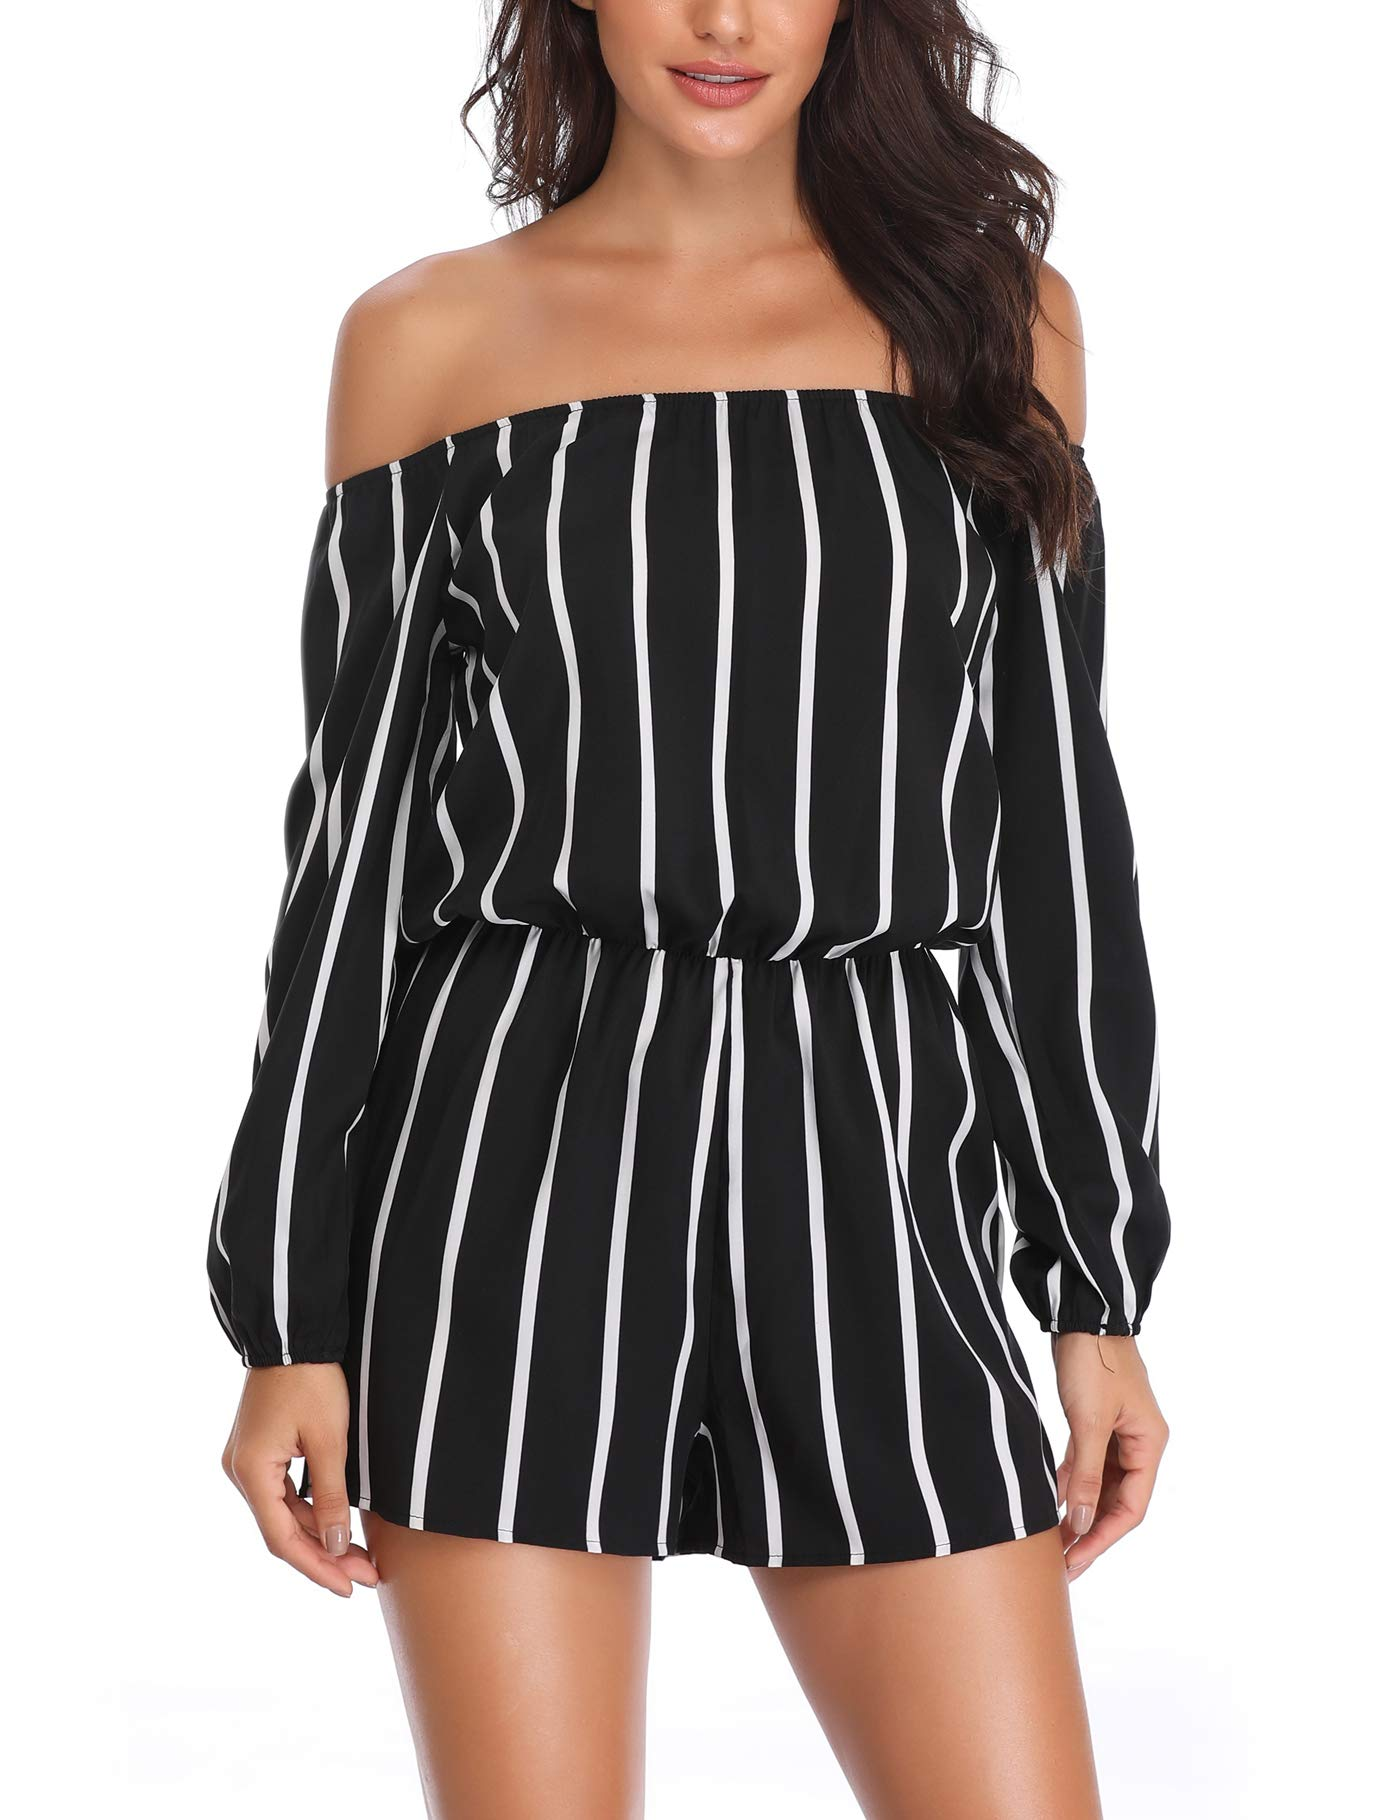 MISS MOLY Women Rompers and Jumpsuits Off The Shoulder Strapless Boat Neck Shorts with Belt by MISS MOLY (Image #1)